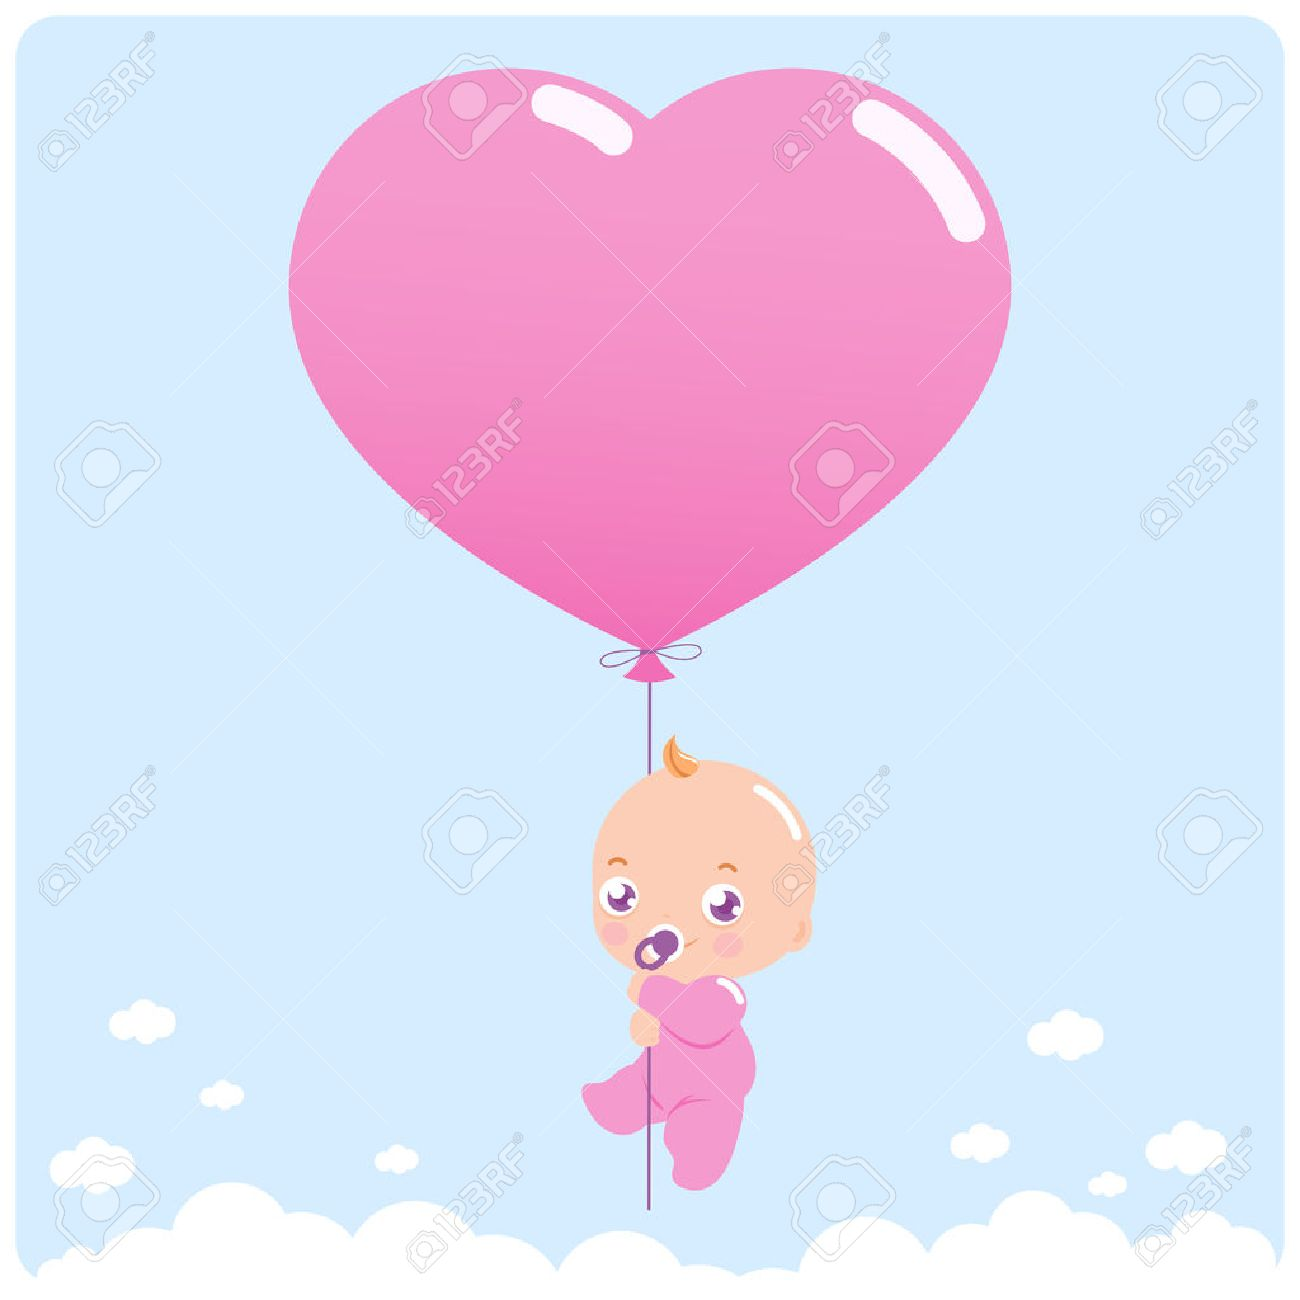 VÌ SAO NHO ? ......HÁT  - Page 4 52179740-newborn-baby-girl-flying-in-the-sky-holding-a-heart-shaped-balloon-